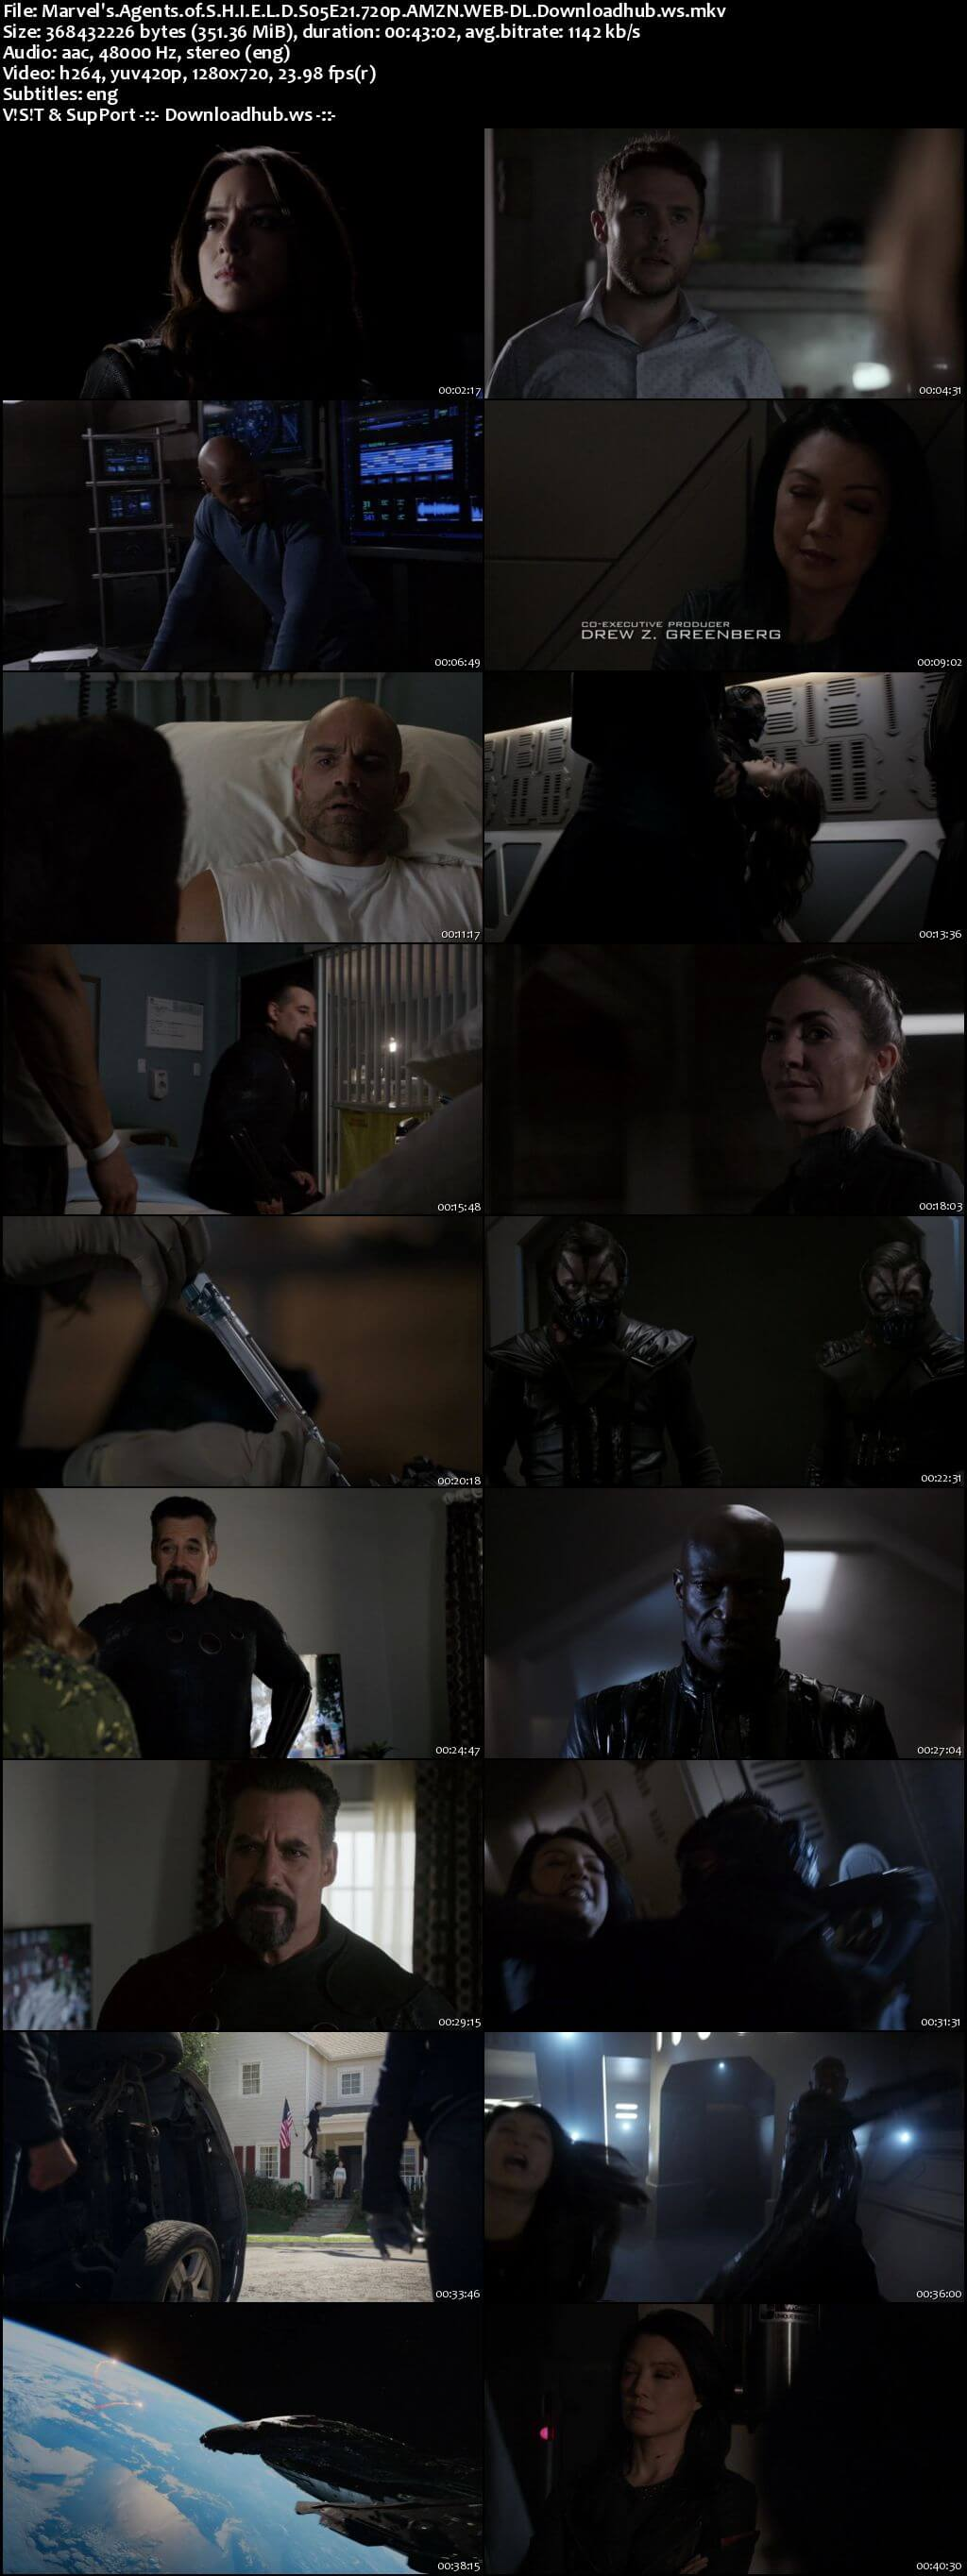 Marvels Agents of S.H.I.E.L.D S05E21 350MB Web-DL 720p x264 ESubs